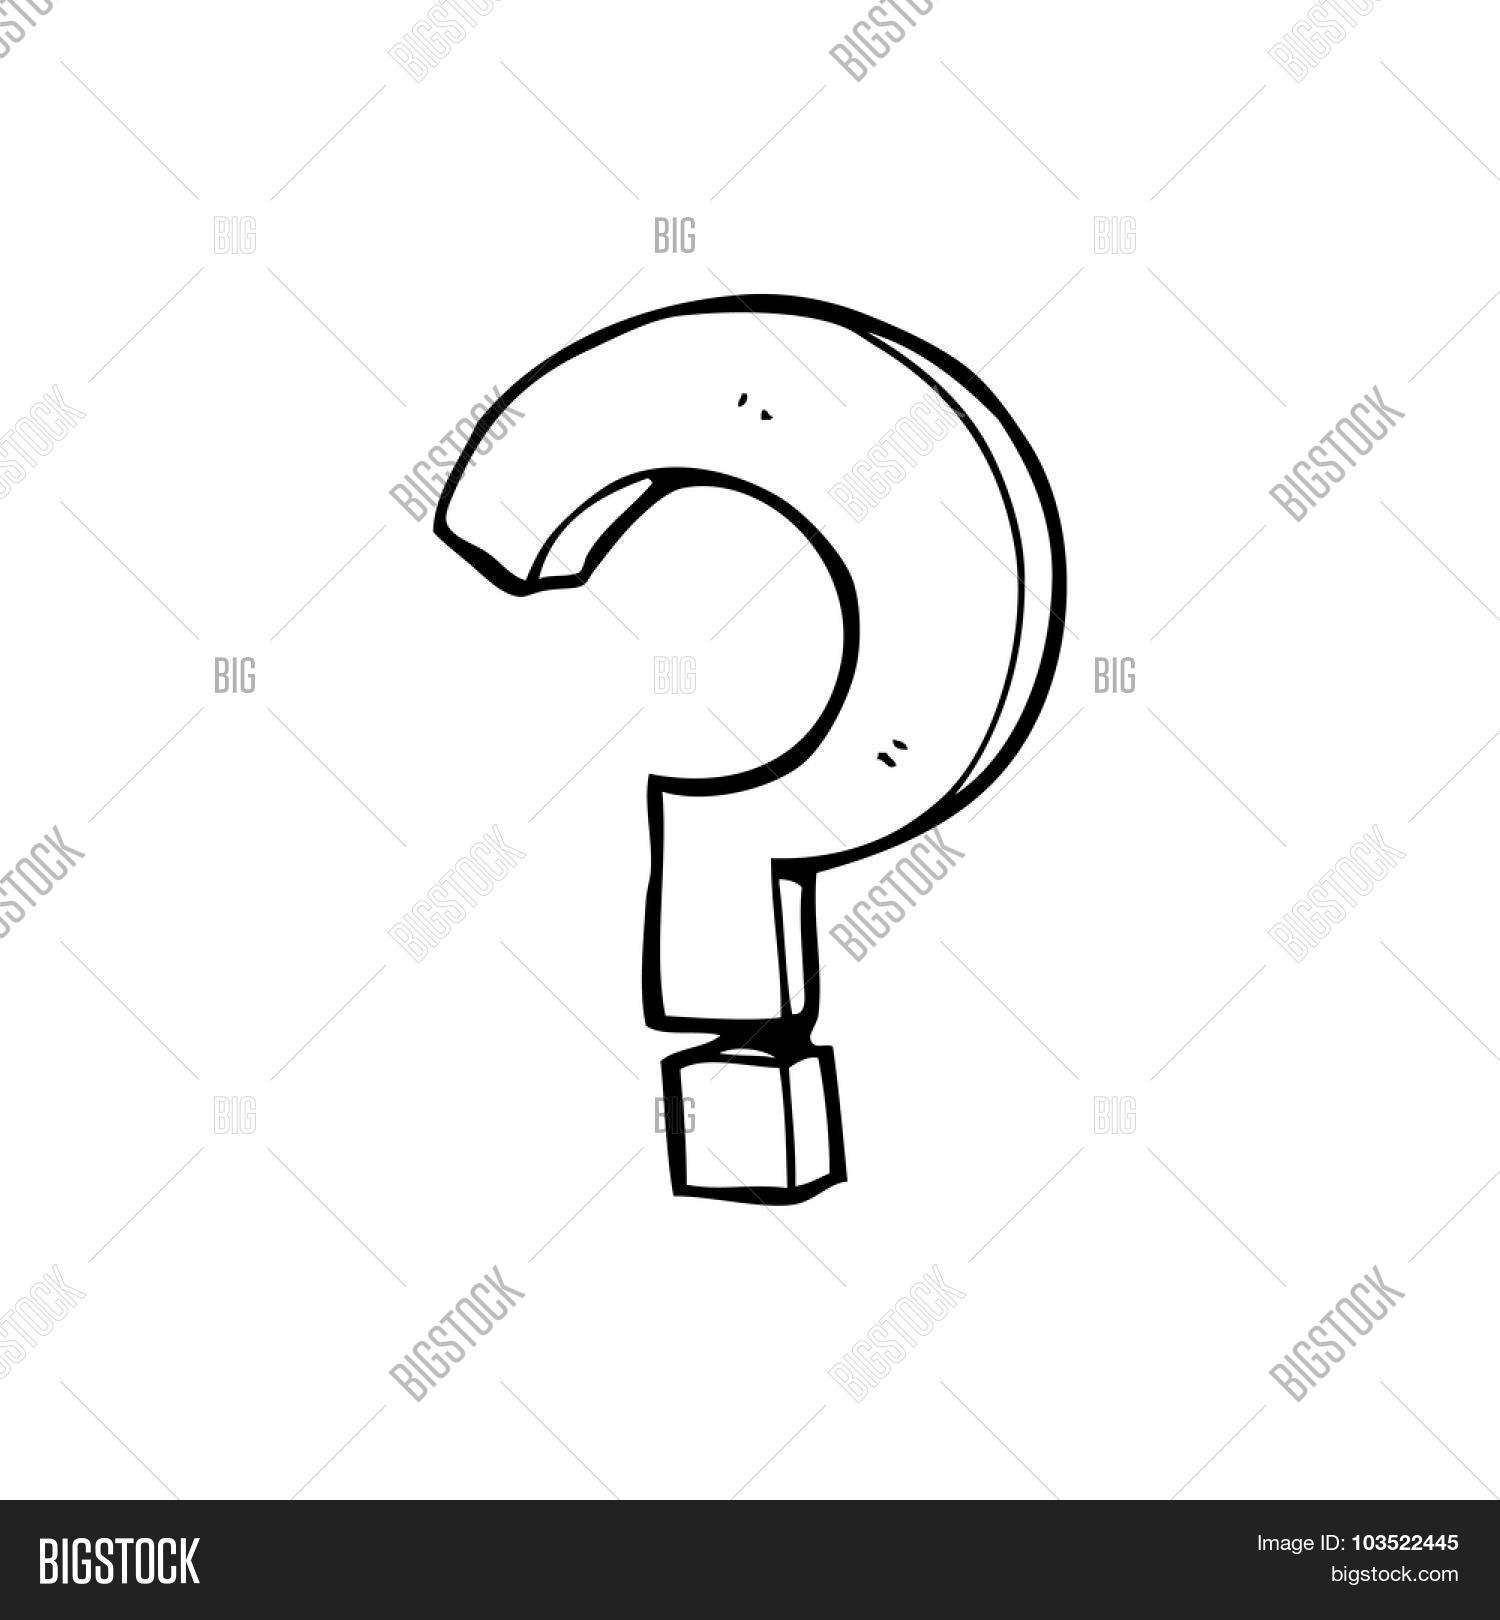 Drawing Smooth Lines Questions : Simple black white line drawing vector photo bigstock